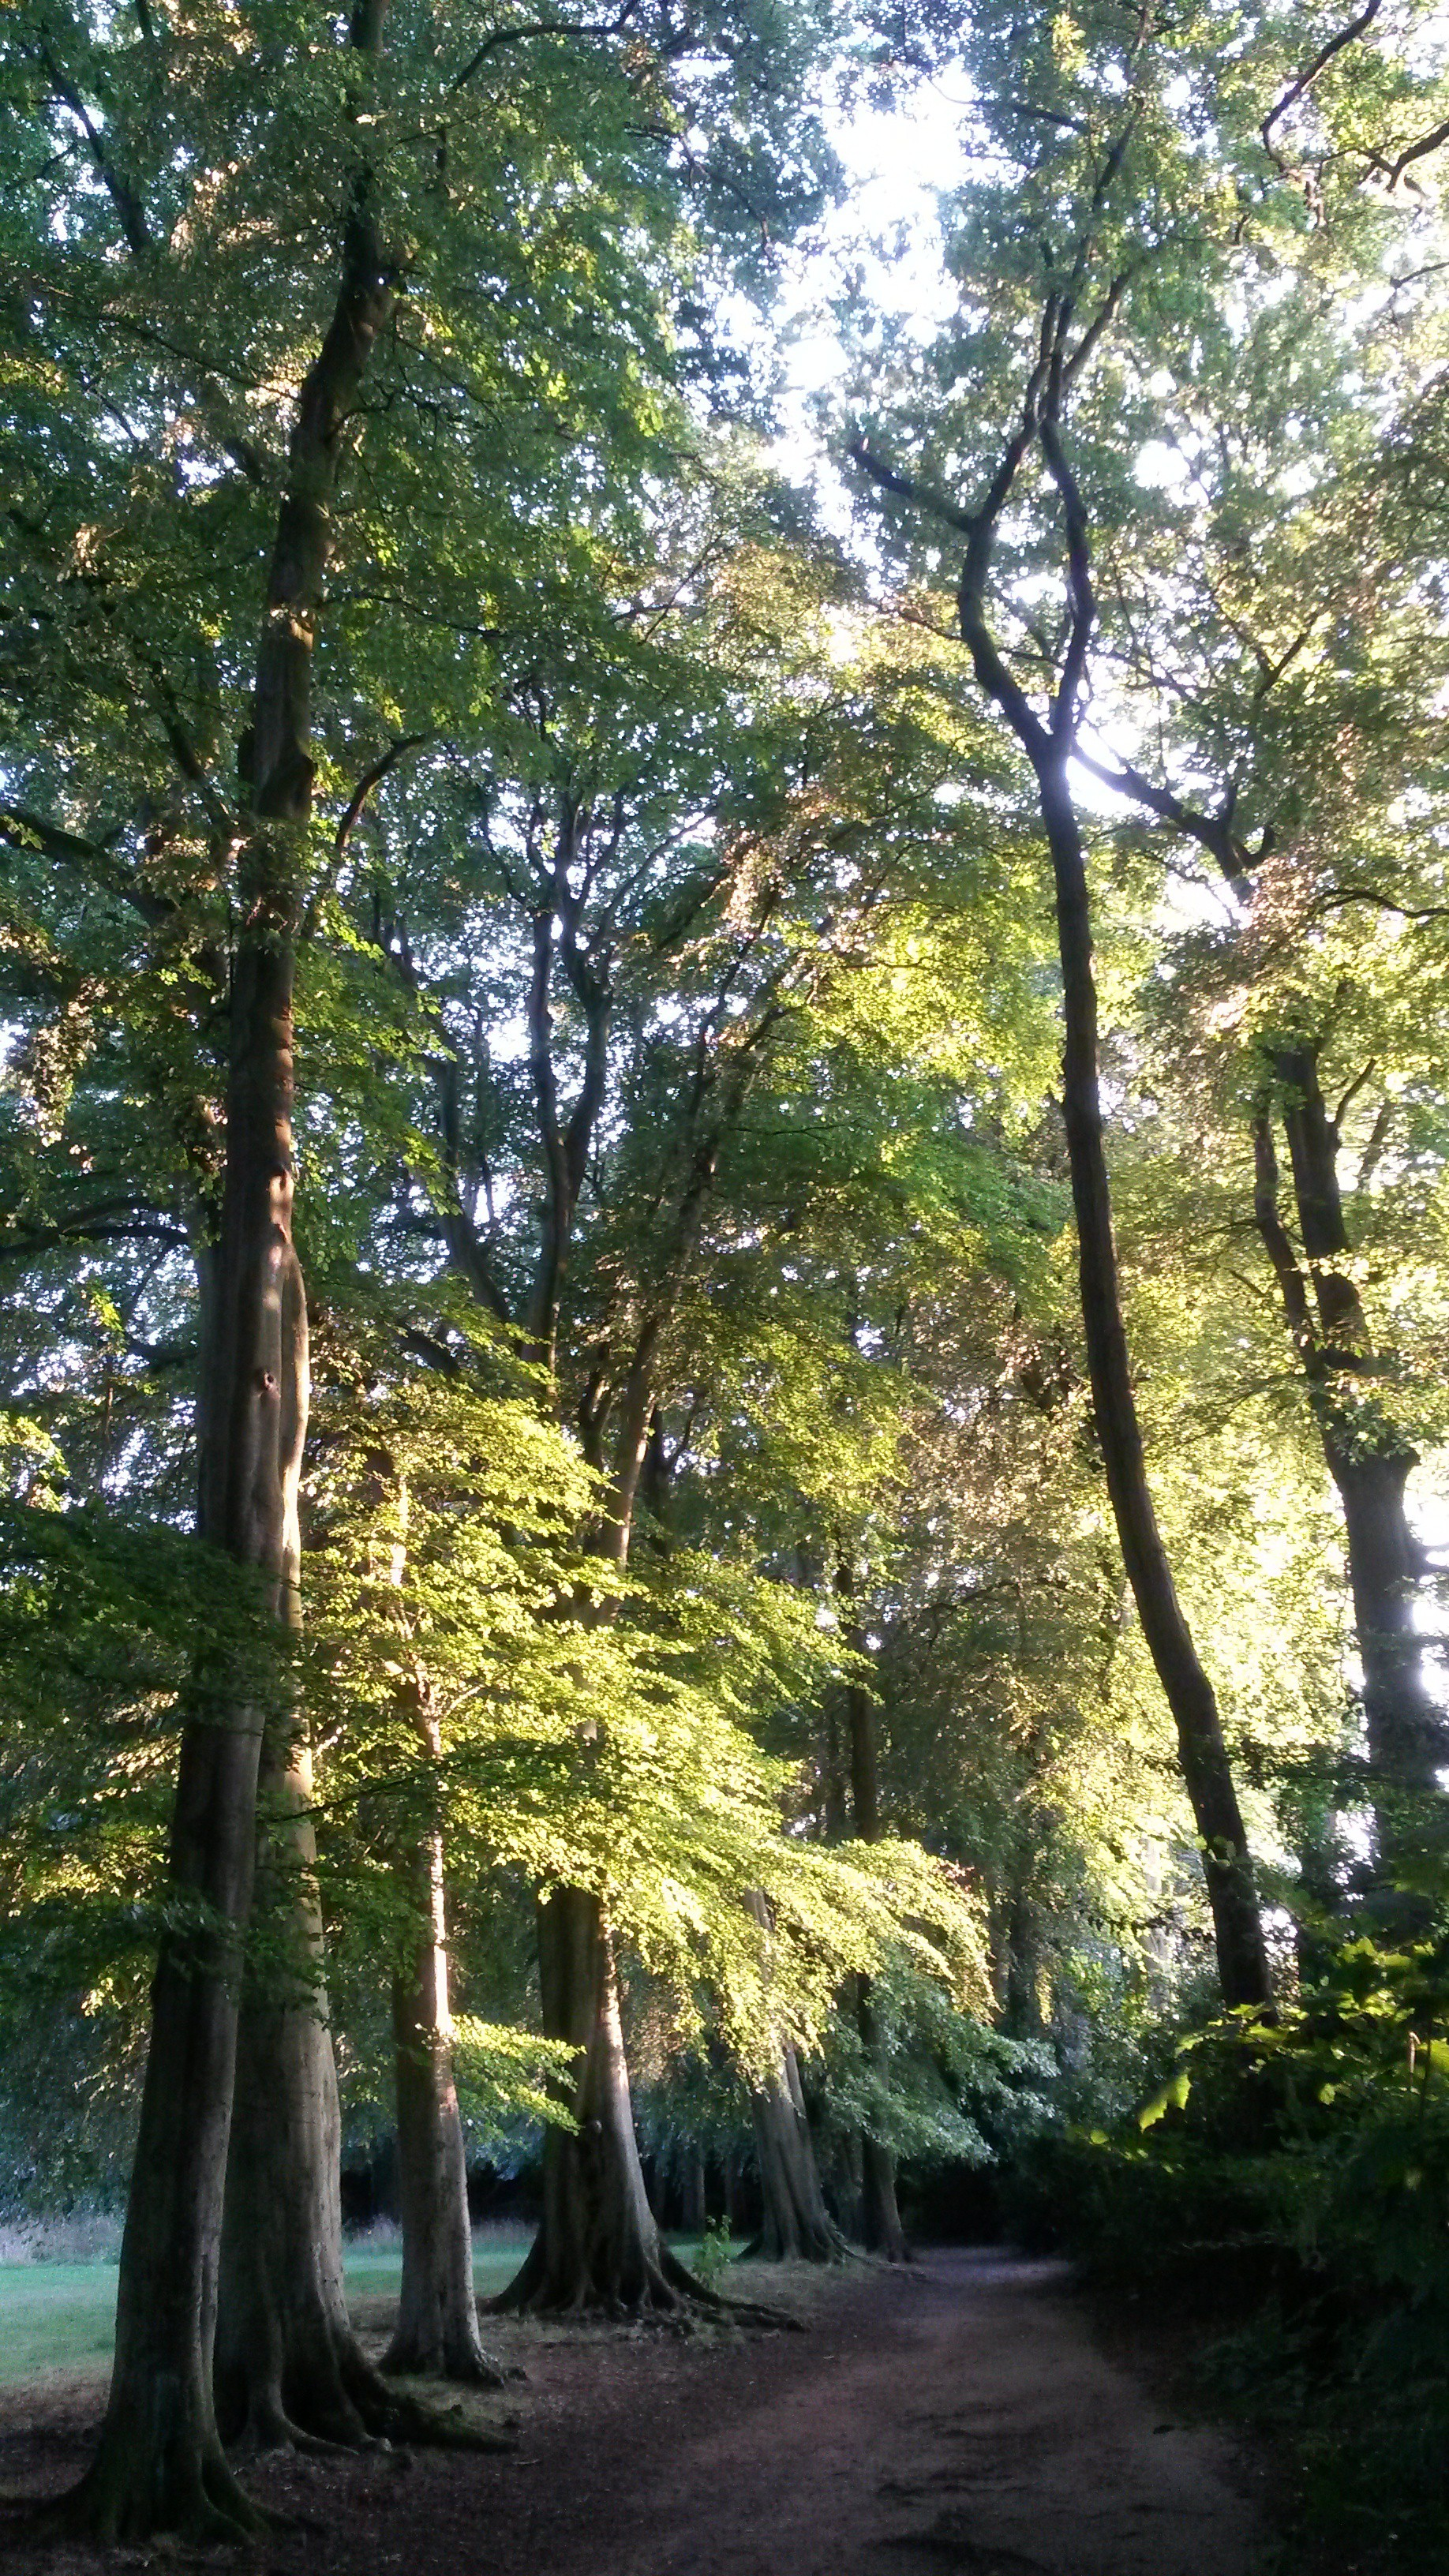 Sunlight in The Beeches, Reynolds Park